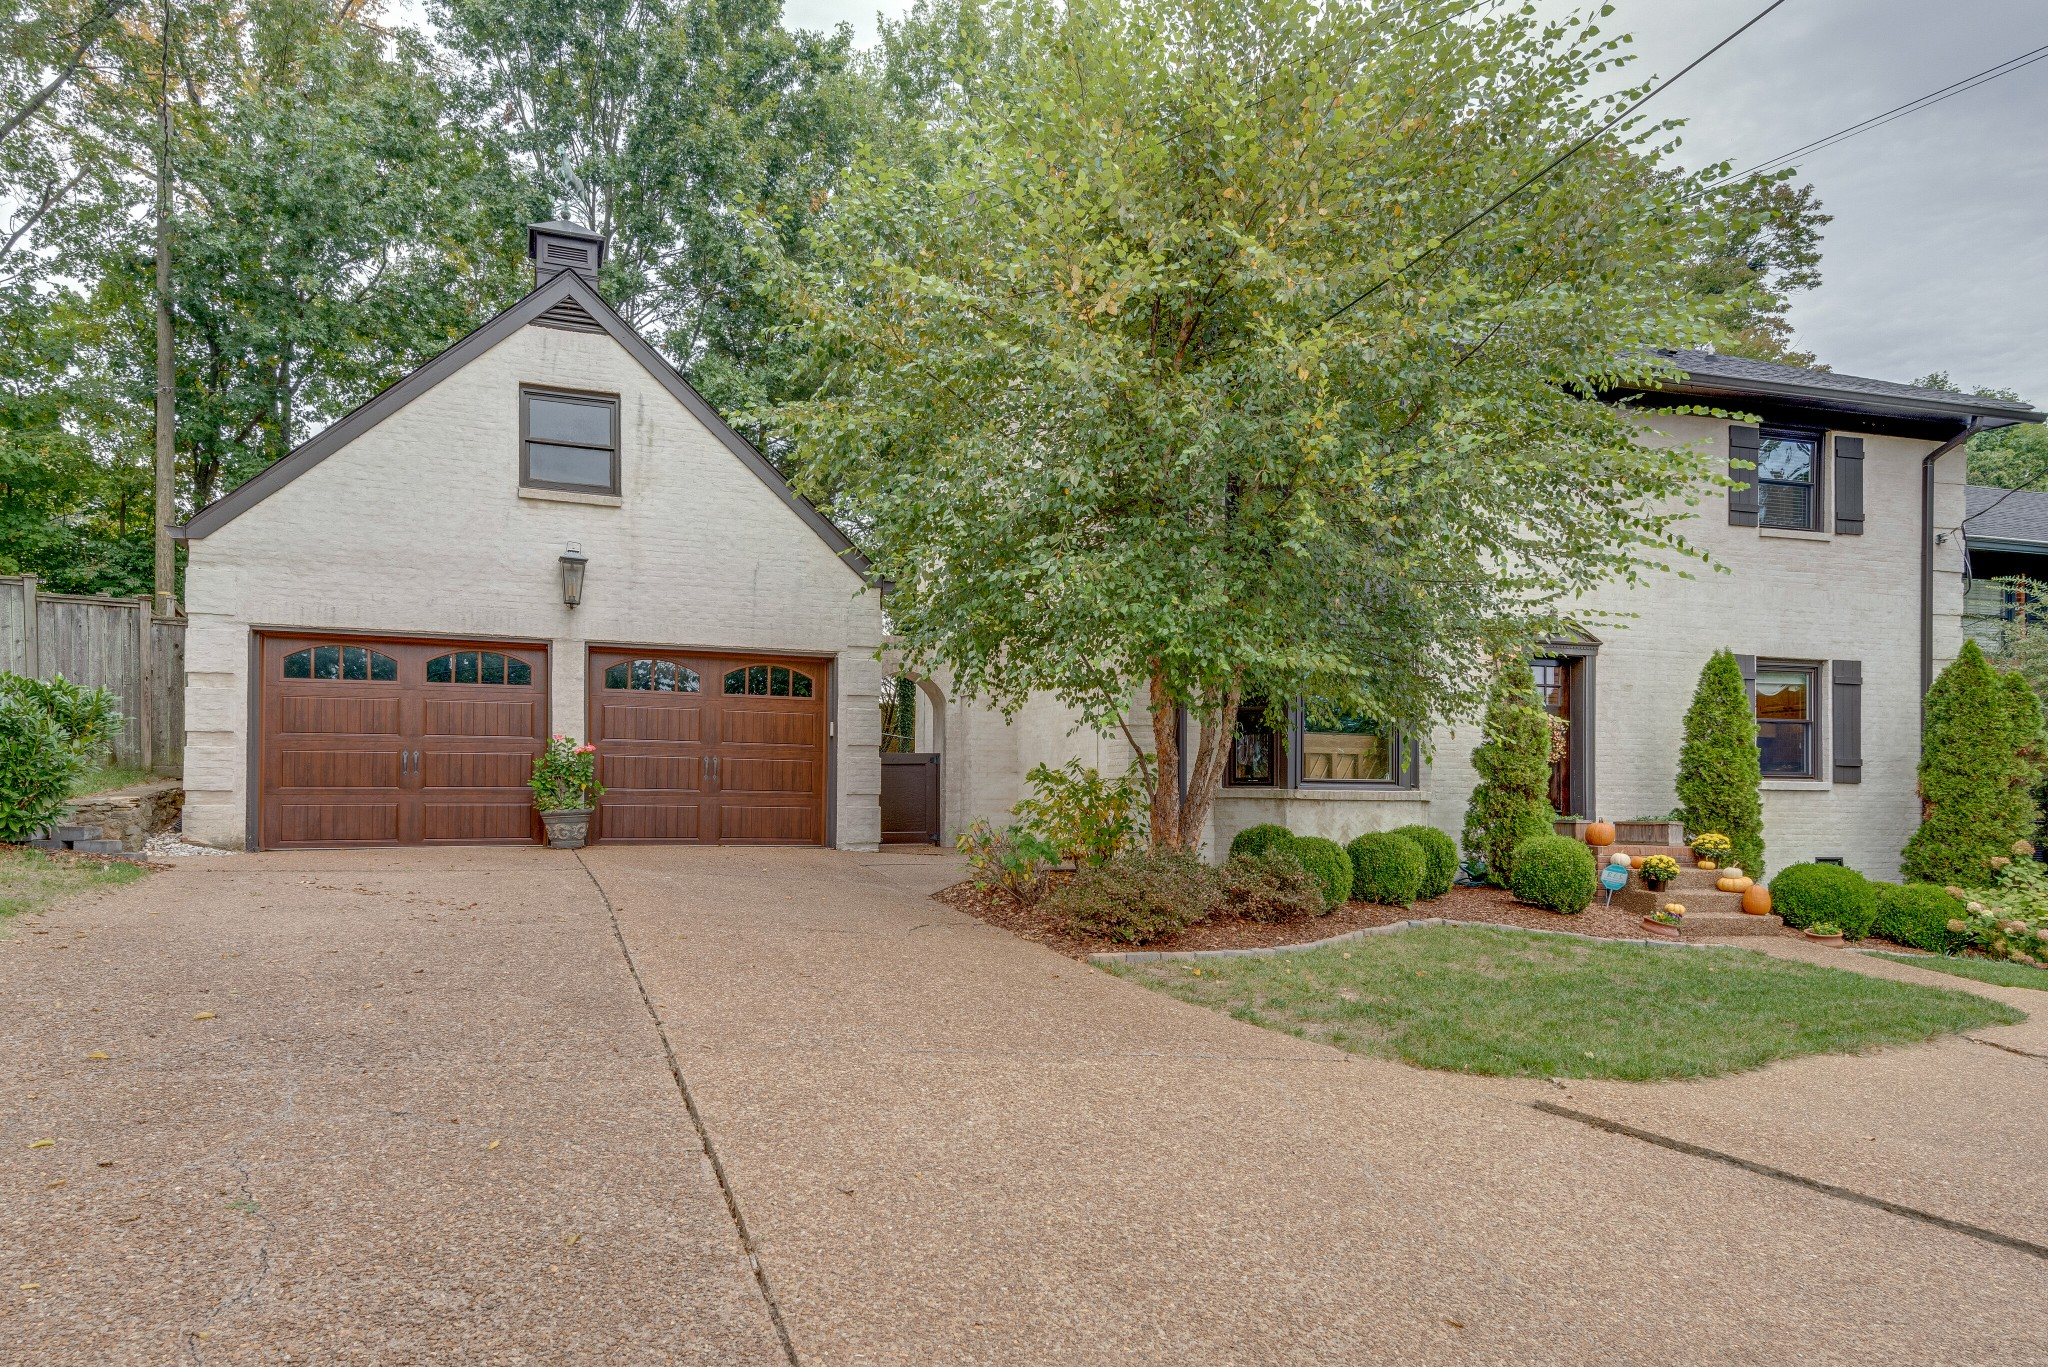 Welcome home to this renovated residence in the heart of West Nashville on a quiet cul-de-sac. Enjoy entertaining in your private backyard oasis with a built-in gas grill, fridge, television hookups, and more. Exceptionally maintained, tons of storage, 2-car enclosed garage, and features custom upgrades throughout including, custom kitchen island, new windows throughout, new tile and buildout in master shower, new lighting, and new HVAC systems. This home is truly one-of-a-kind!